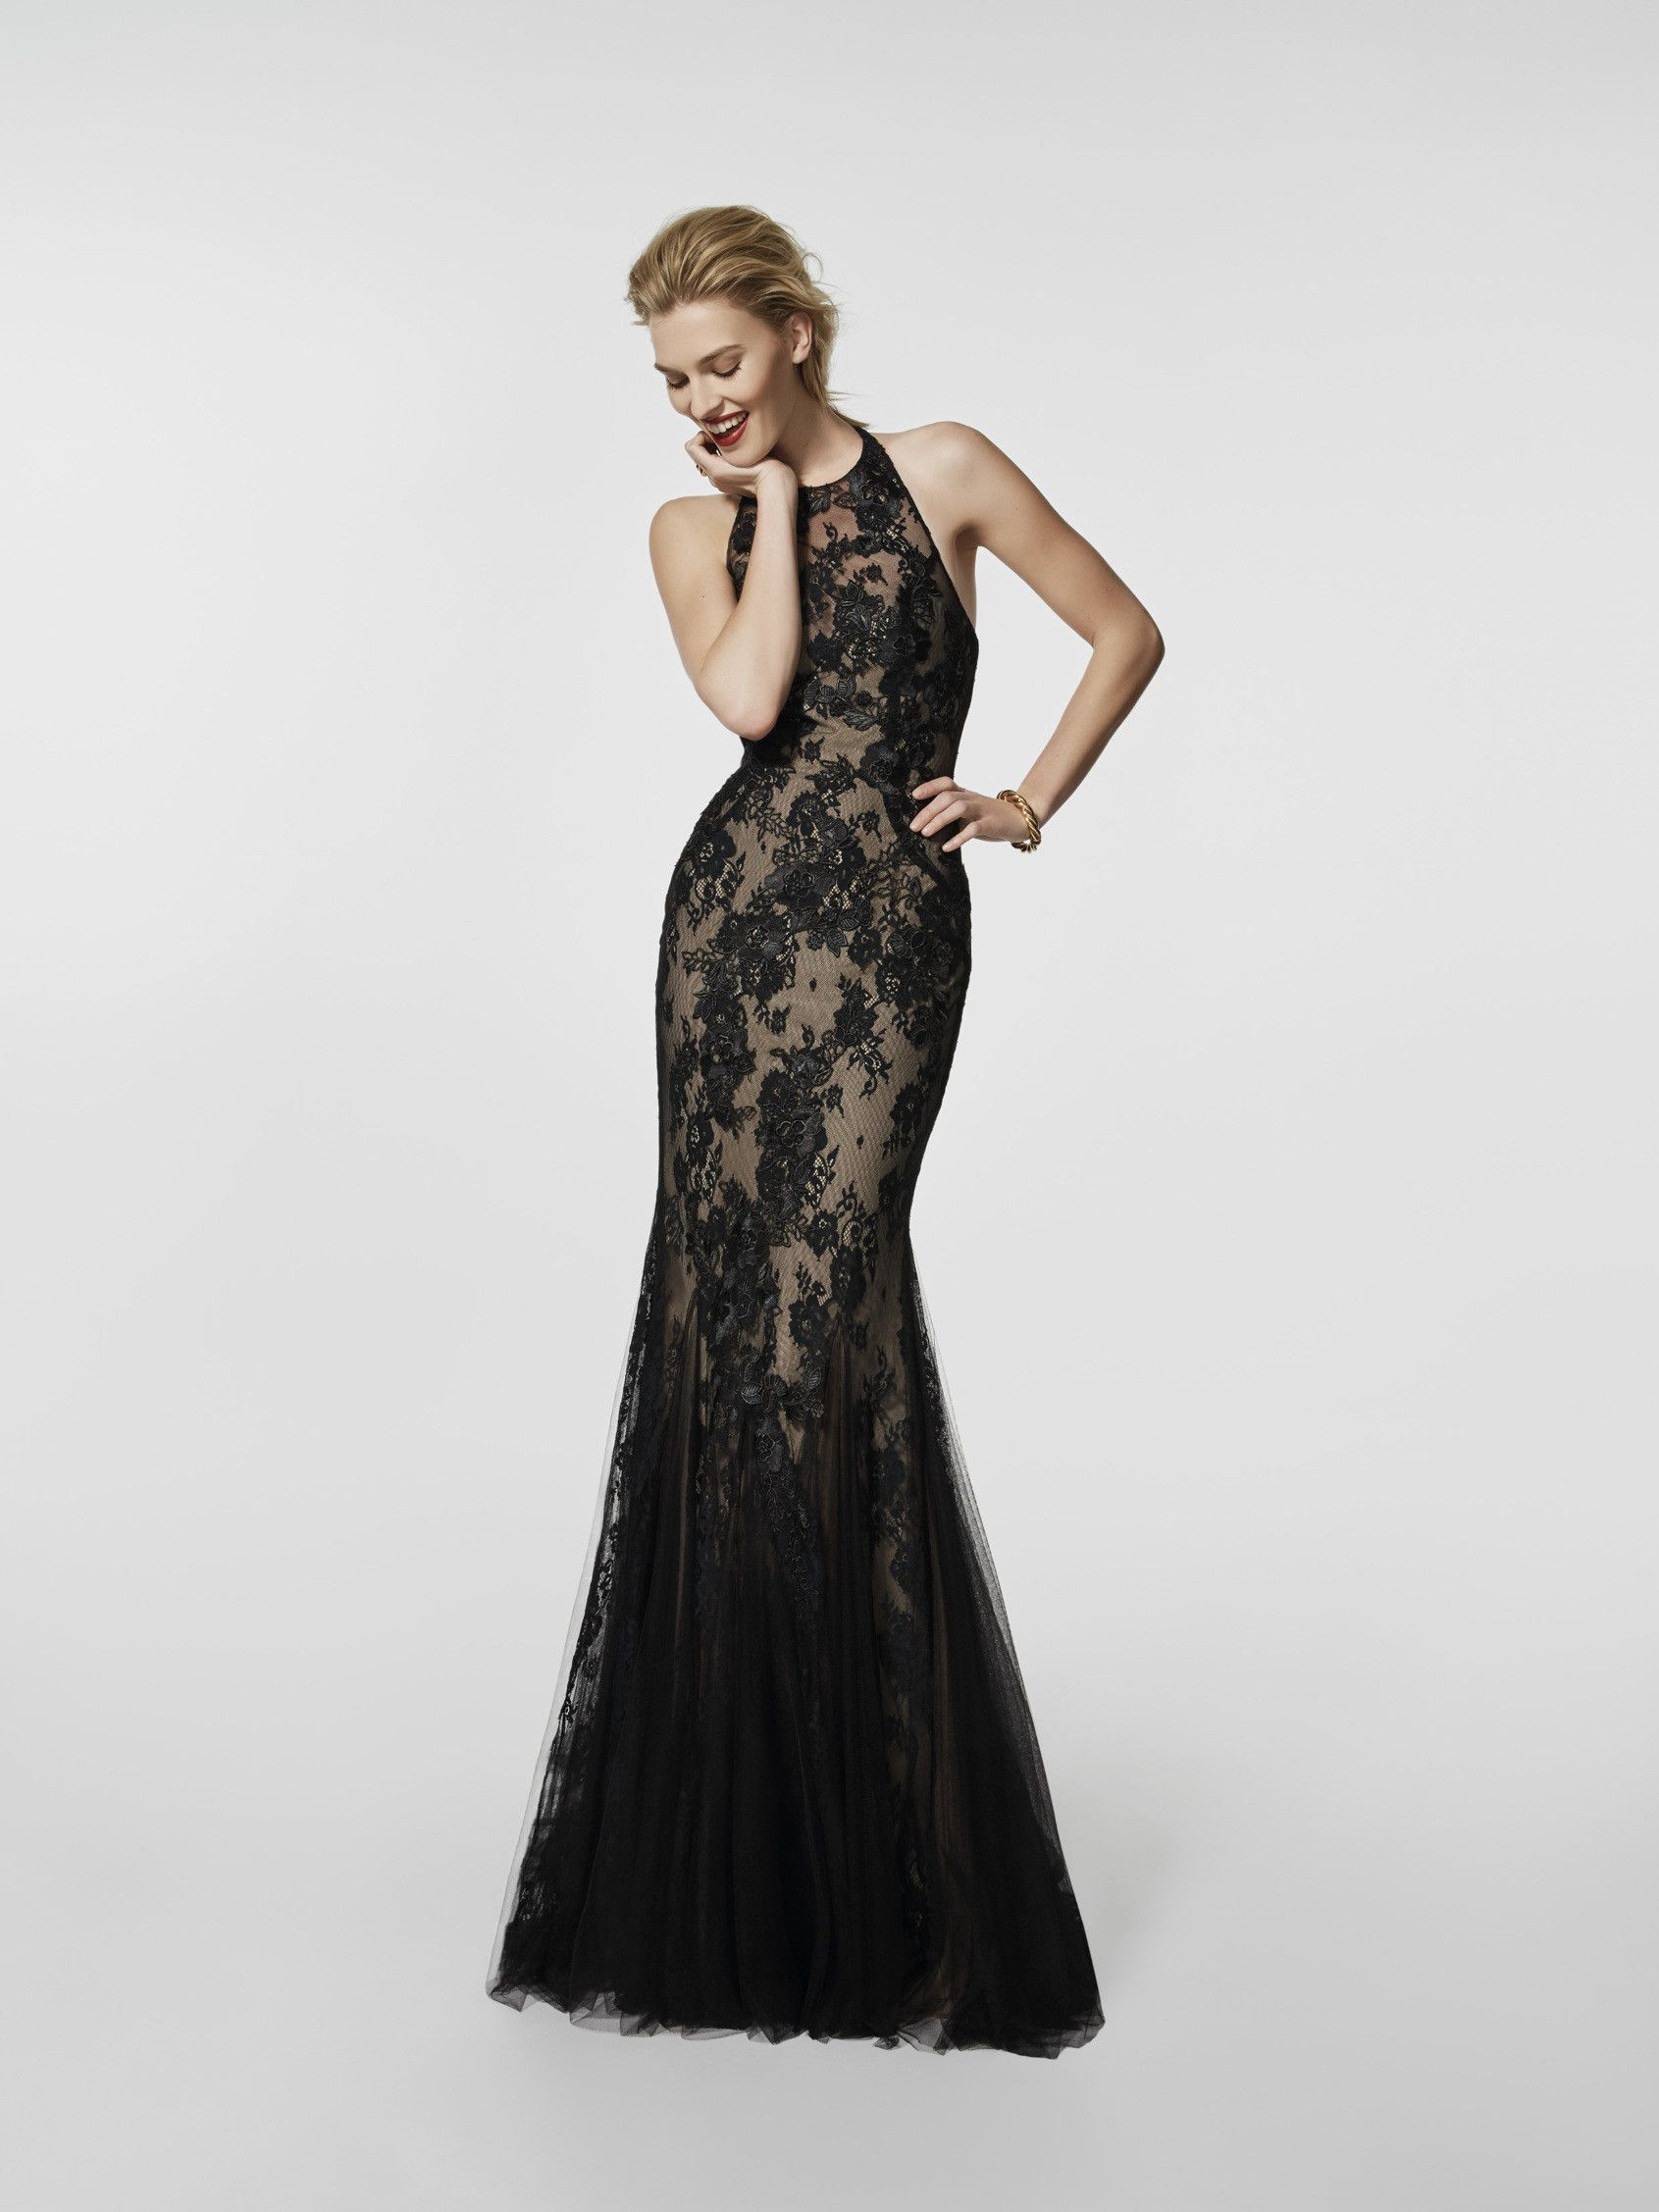 Black dress long - Are You Looking For A Cocktail Dress This Is A Long Black Dress Grace